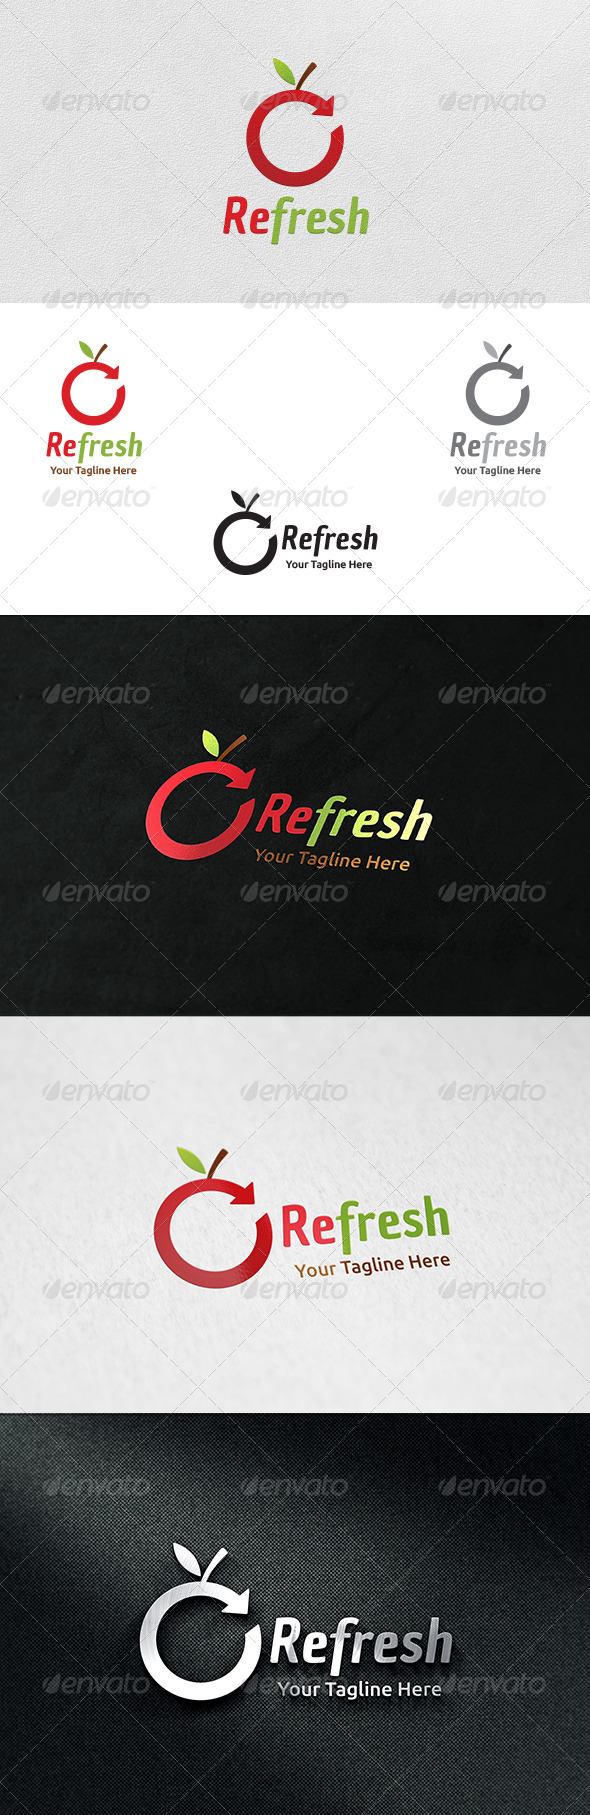 GraphicRiver Refresh Logo Template 6131111